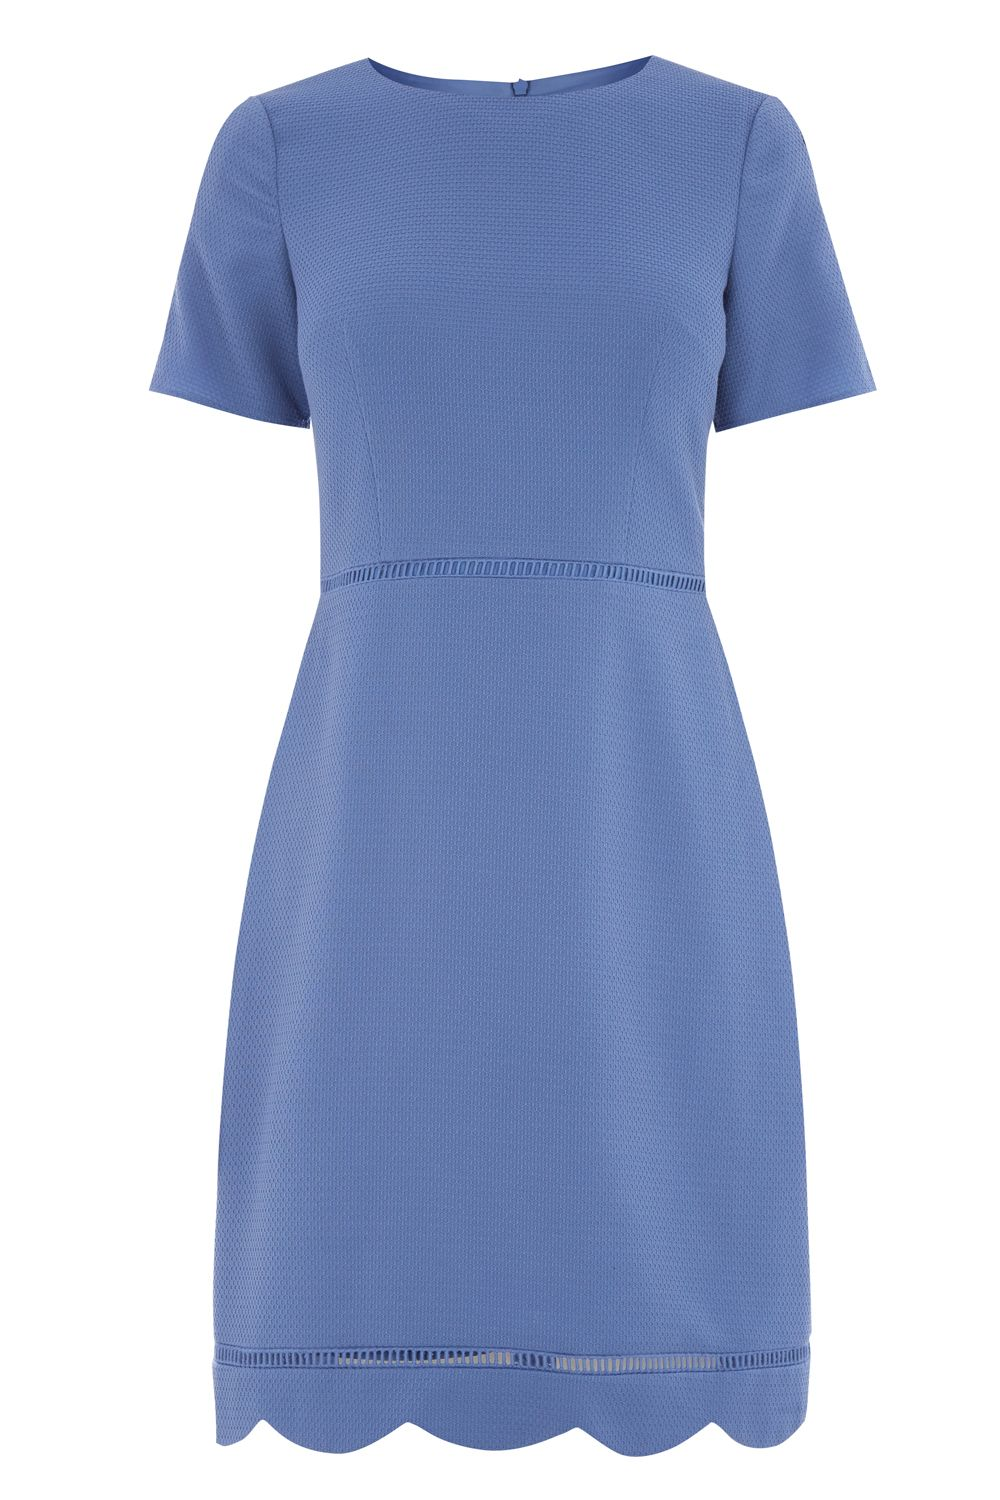 Oasis Scallop Sleeve Dress Longer Length, Mid Blue